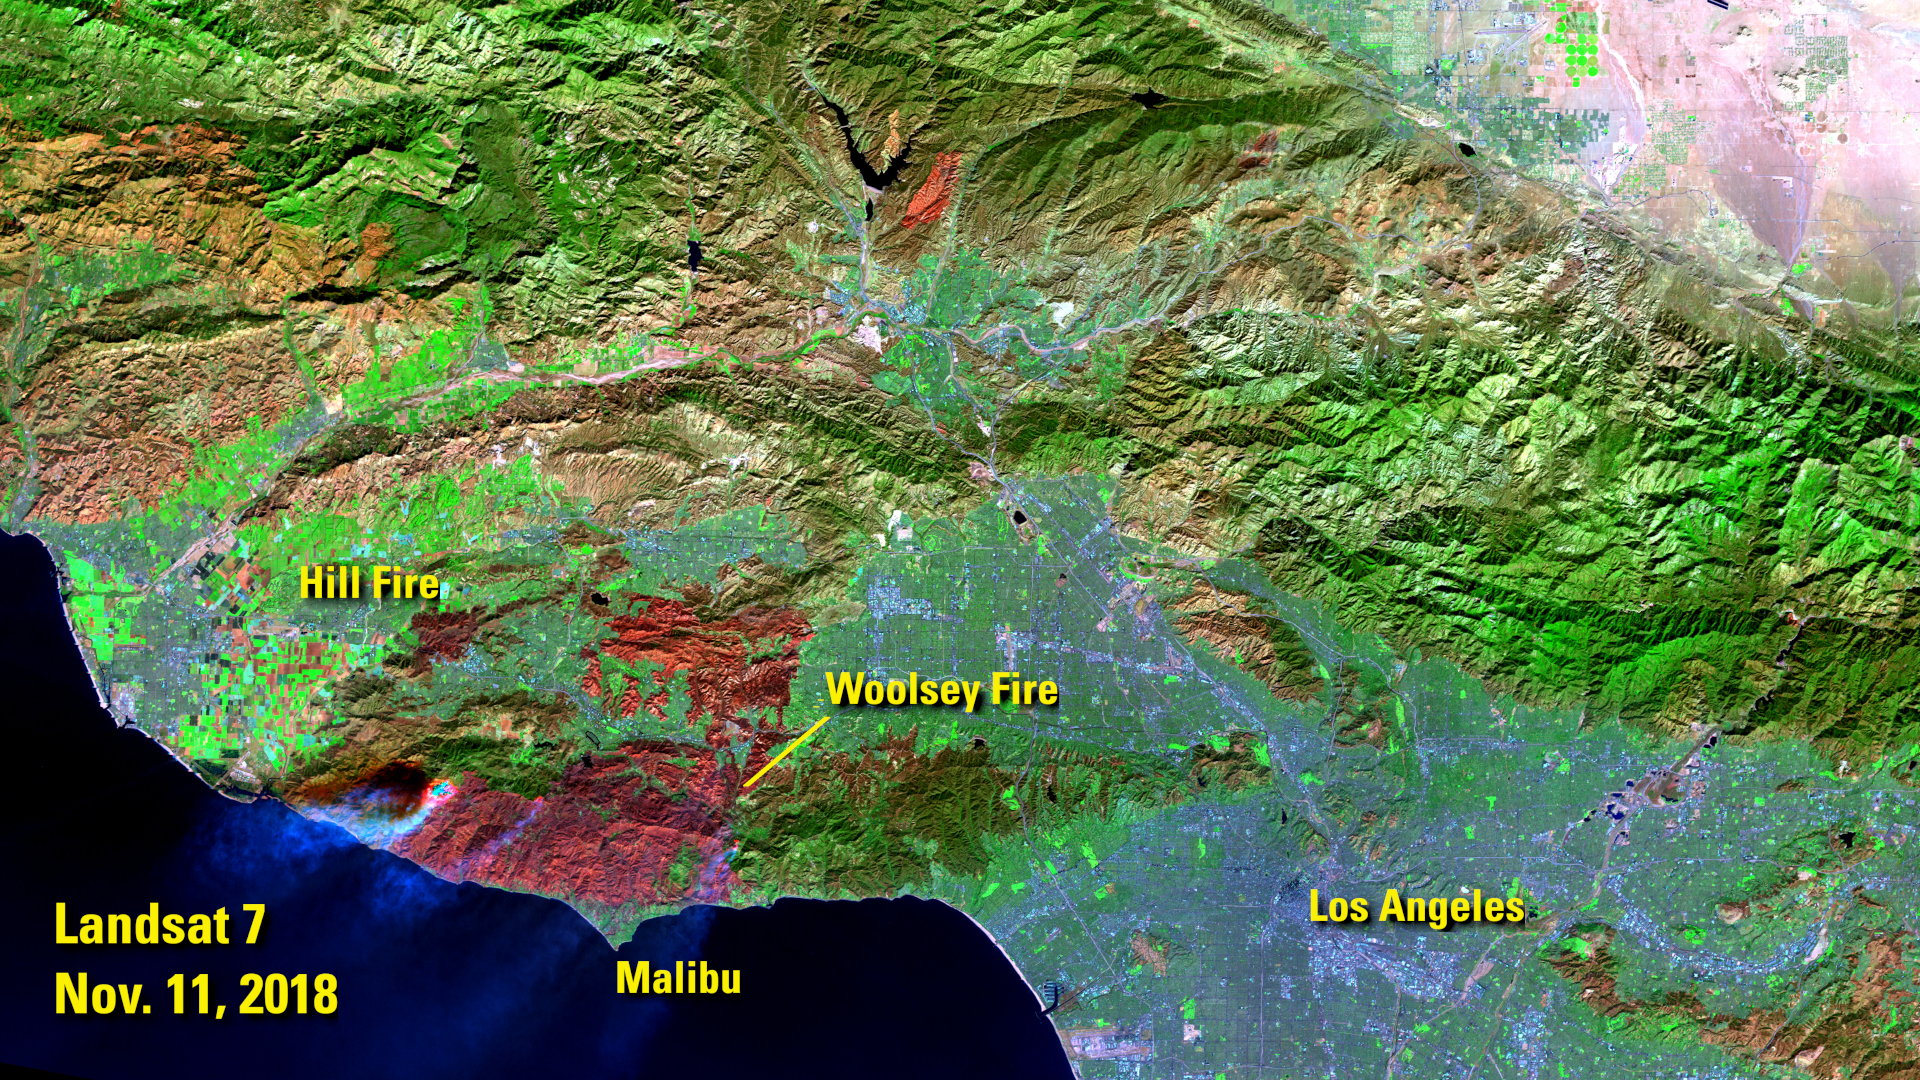 Landsat 7 image of Malibu, California